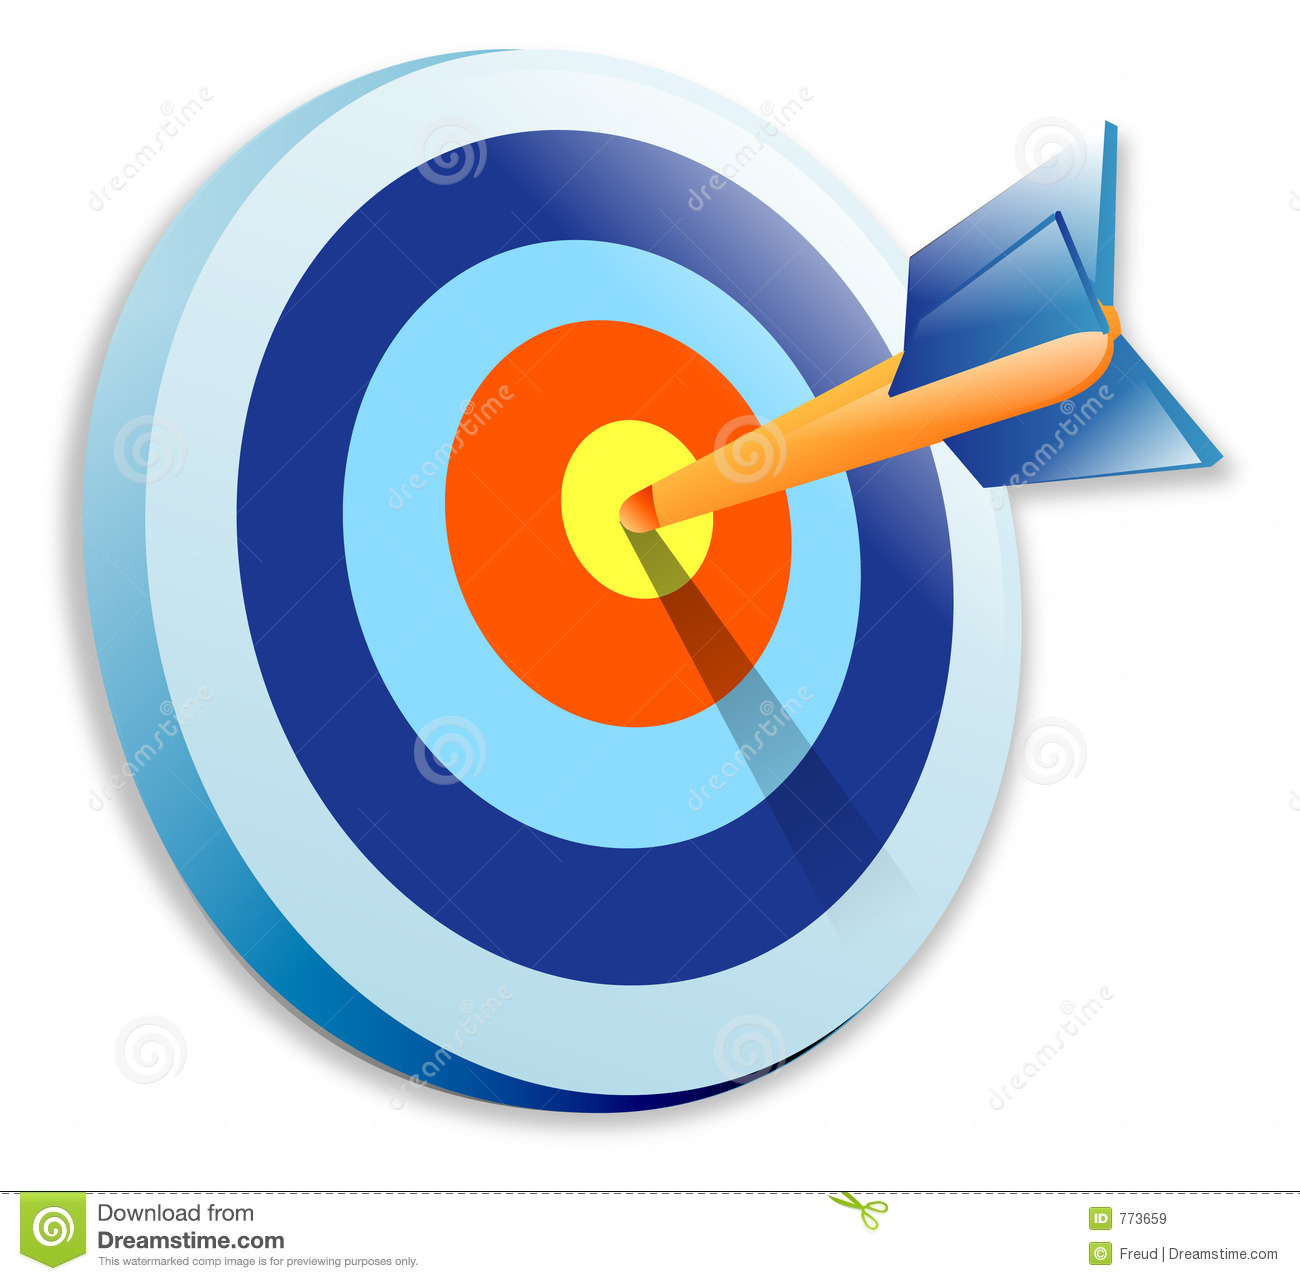 Bullseye Royalty Free Stock Images - Image: 773659